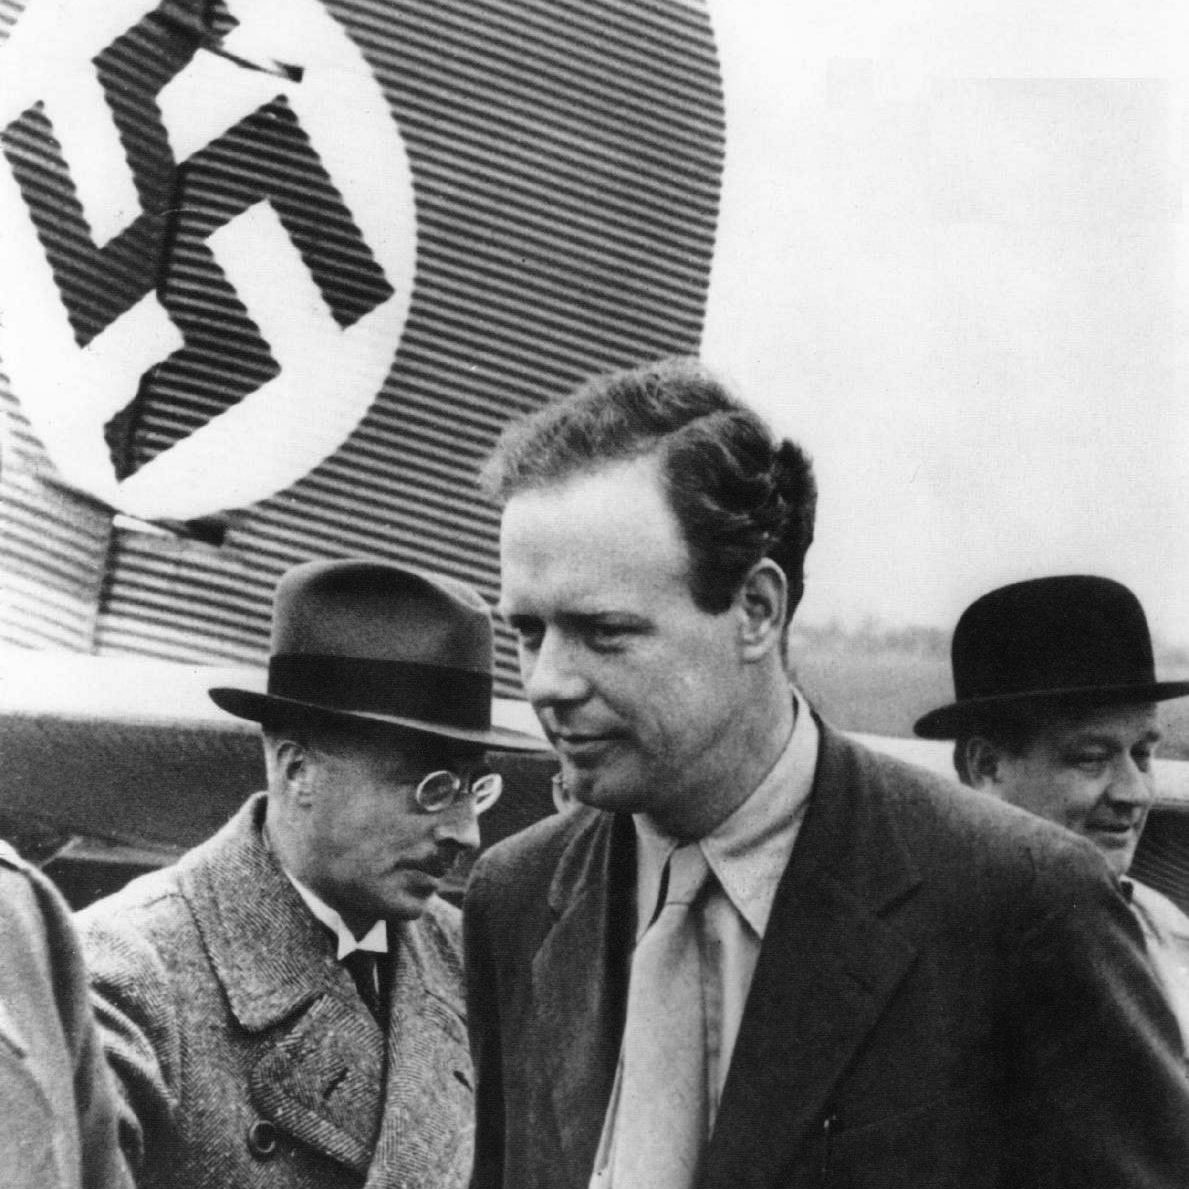 Lindbergh visiting Germany during the 1930s. During his outspoken anti war isolationism with 'America First', Lindbergh was accused of being a fascist sympathiser.